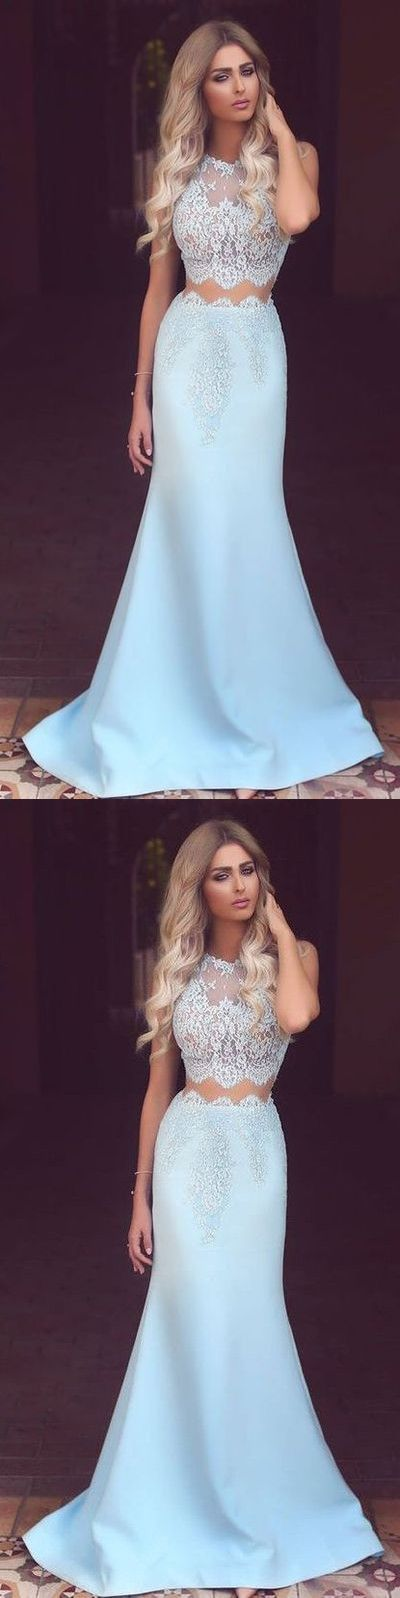 Lace Two Pieces Long Prom Dress, Light Blue Prom Dress, Long Tulle Lace Prom Dress, Formal Dresses, Evening Wedding Party Gown,468